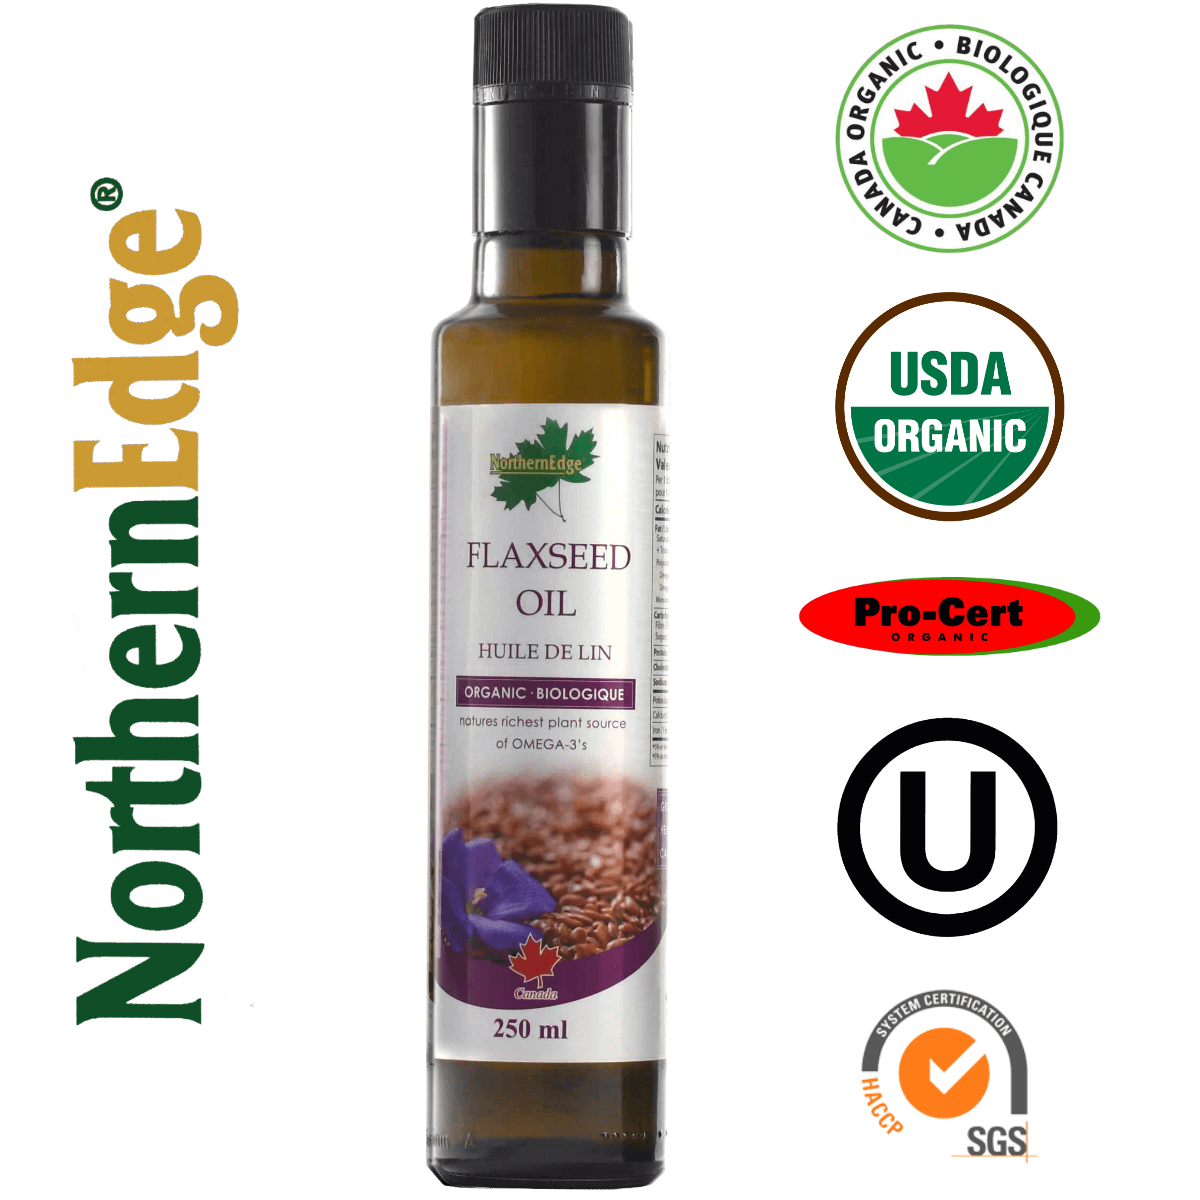 Organic Flaxseed Oil - 250 ml